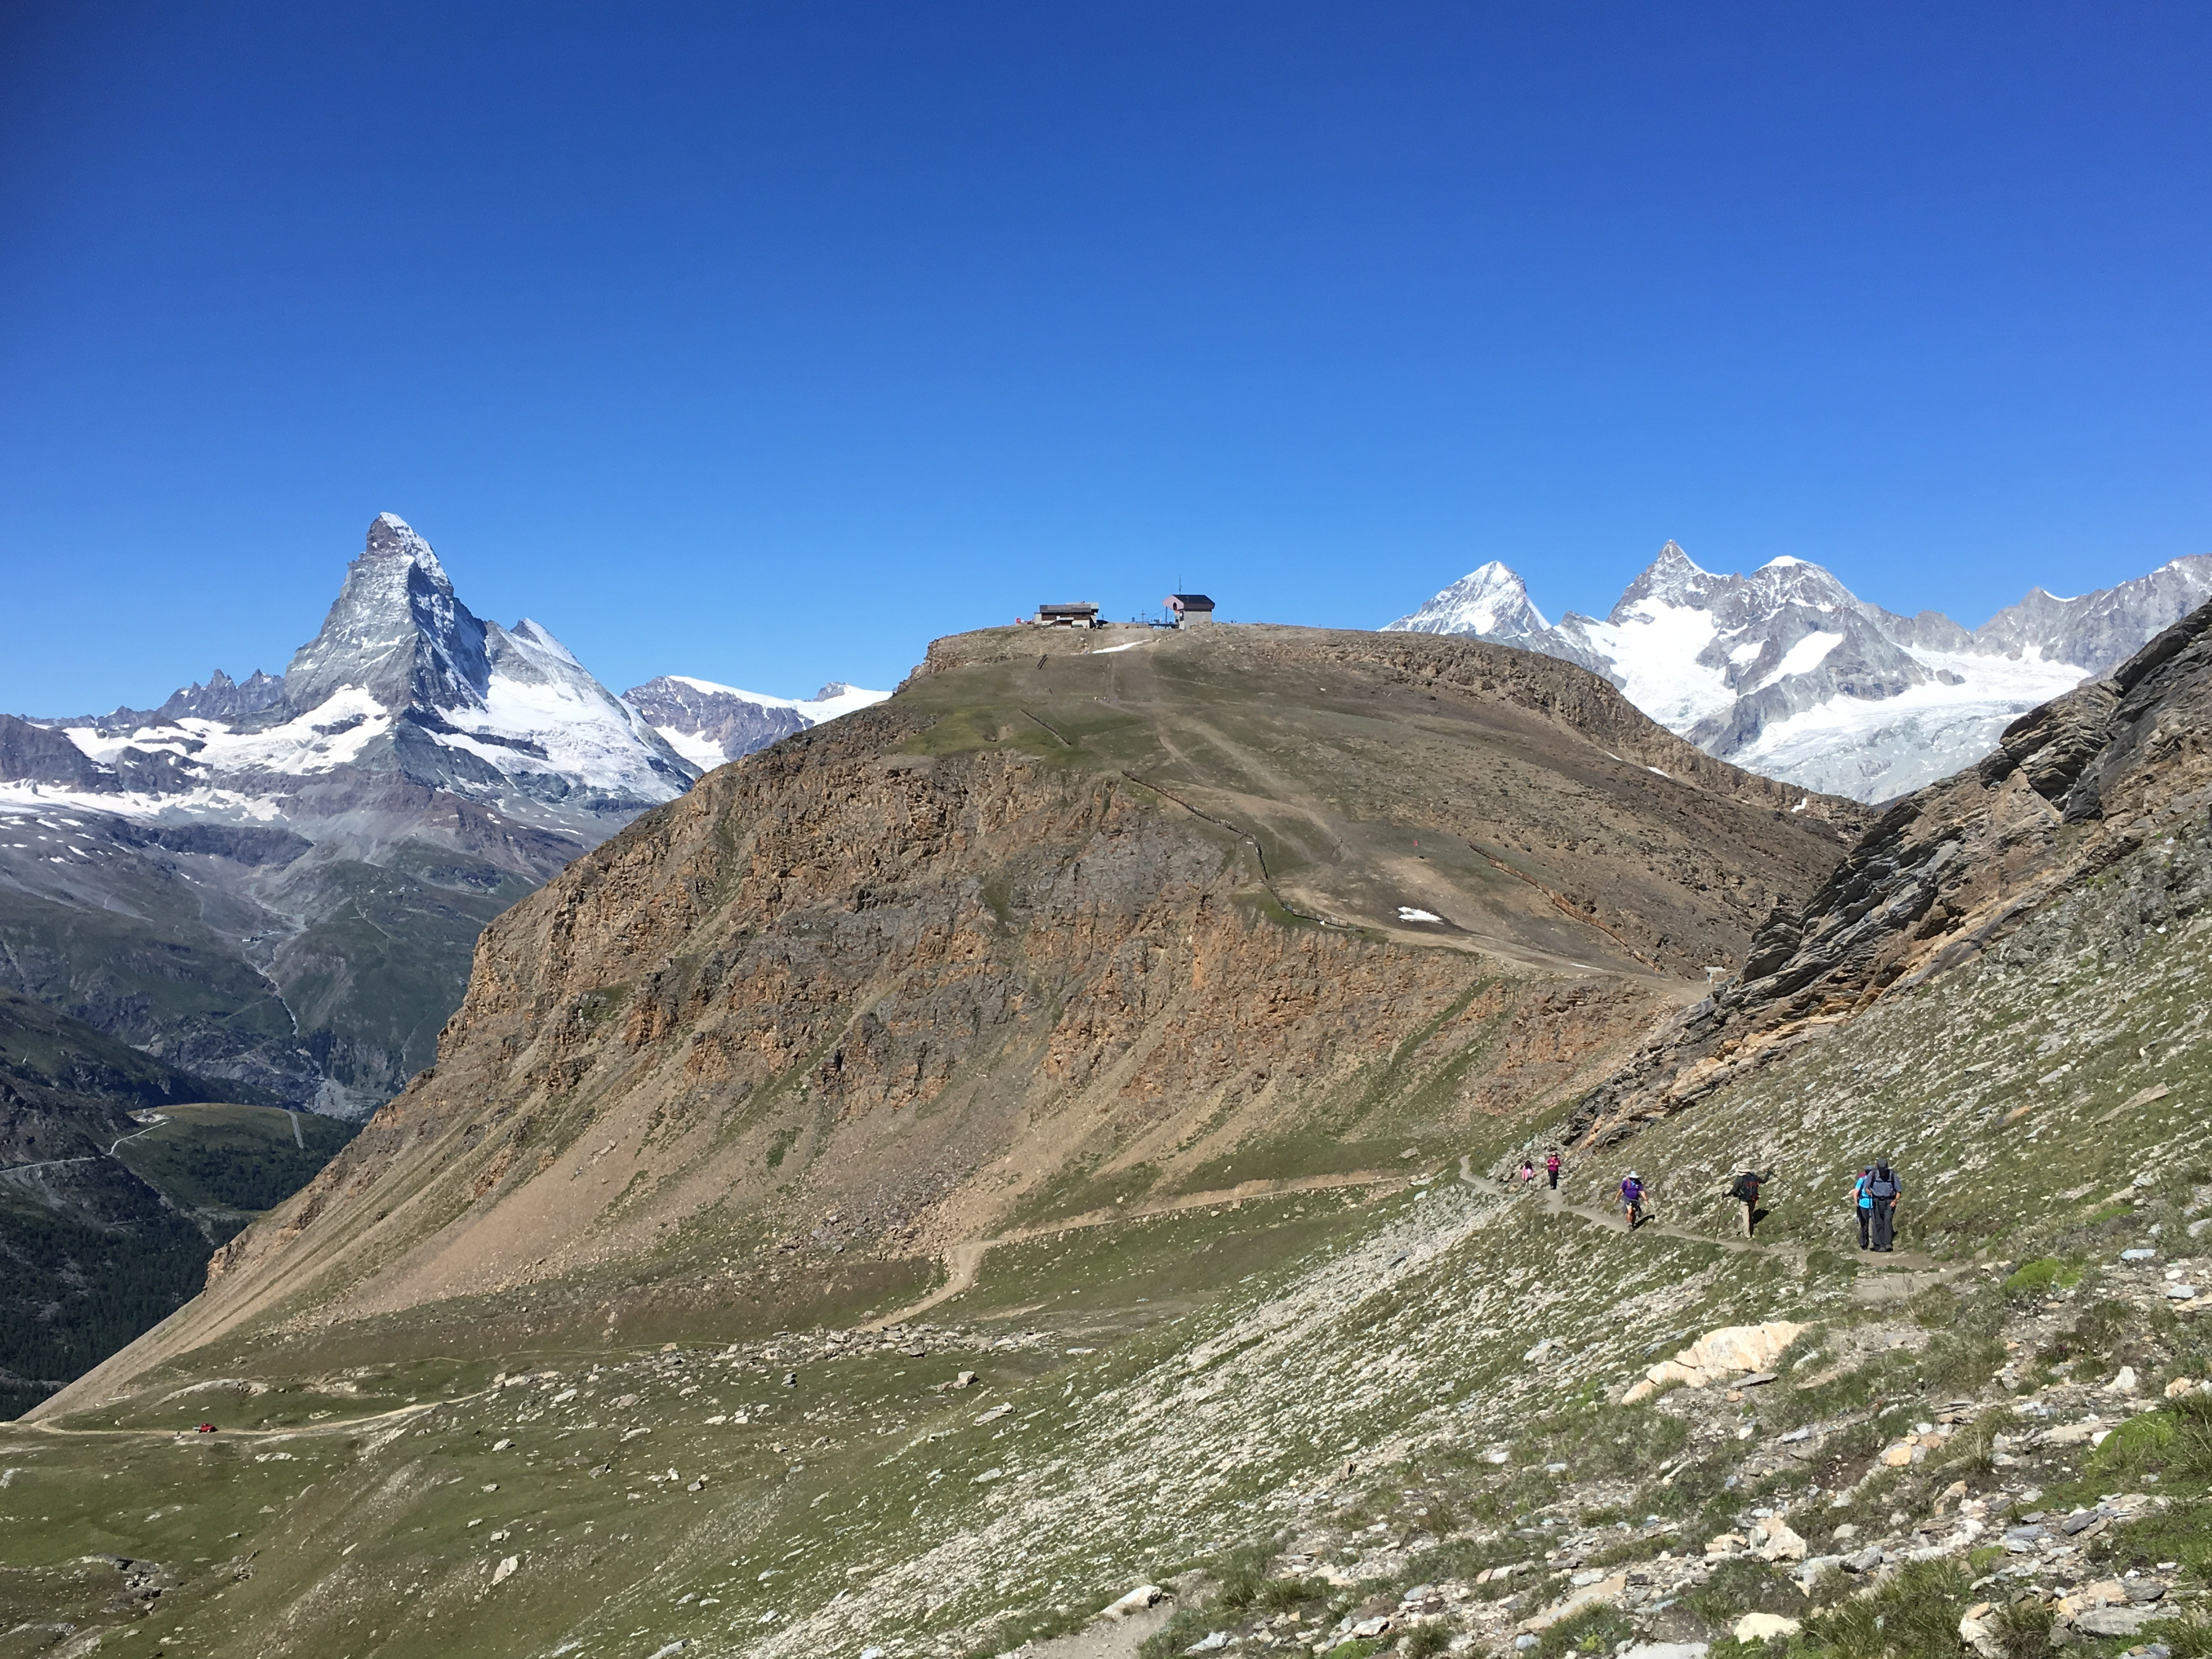 Free download high resolution image - free image free photo free stock image public domain picture -hikers team in the mountains. Matterhorn. Swiss Alps